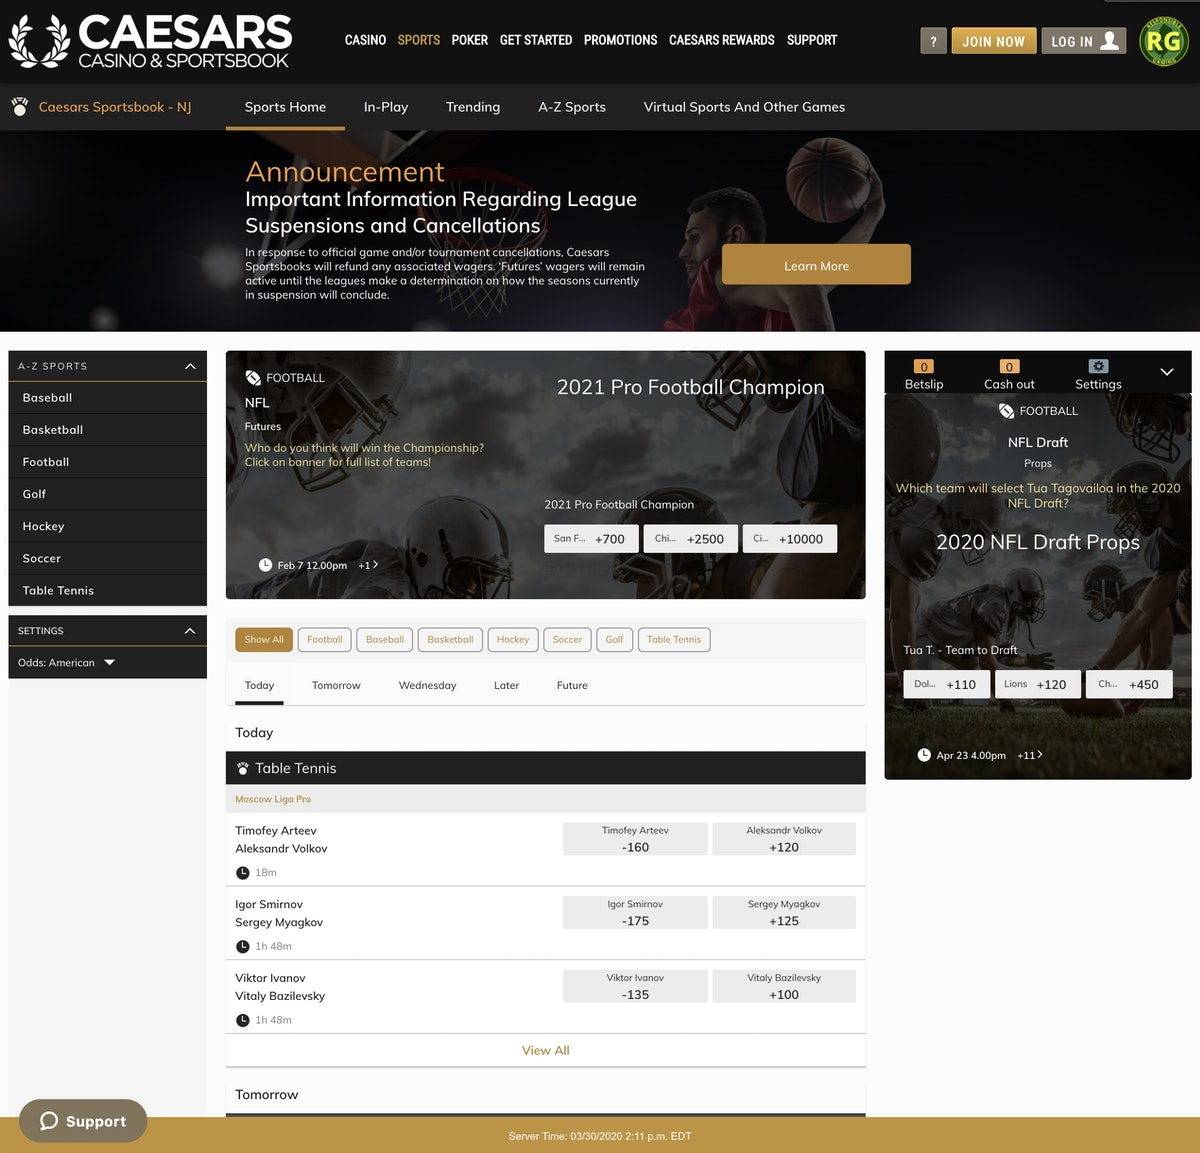 Caesars Online Casino Customer Service